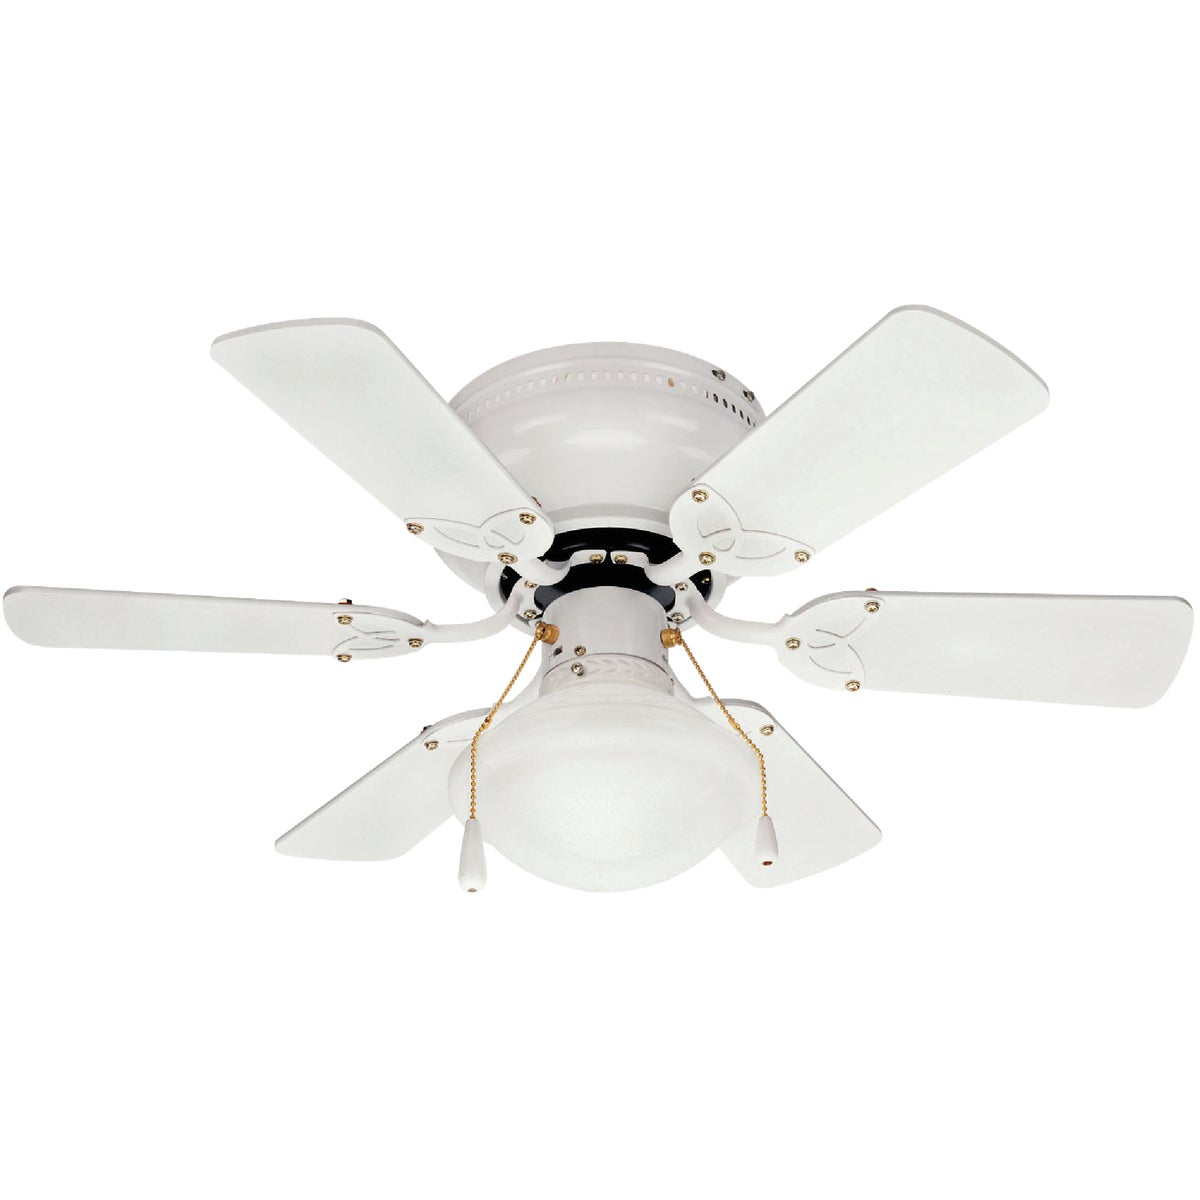 "30"" WHITE CEILING FAN - CF30TWI6WH by Canarm Gs"